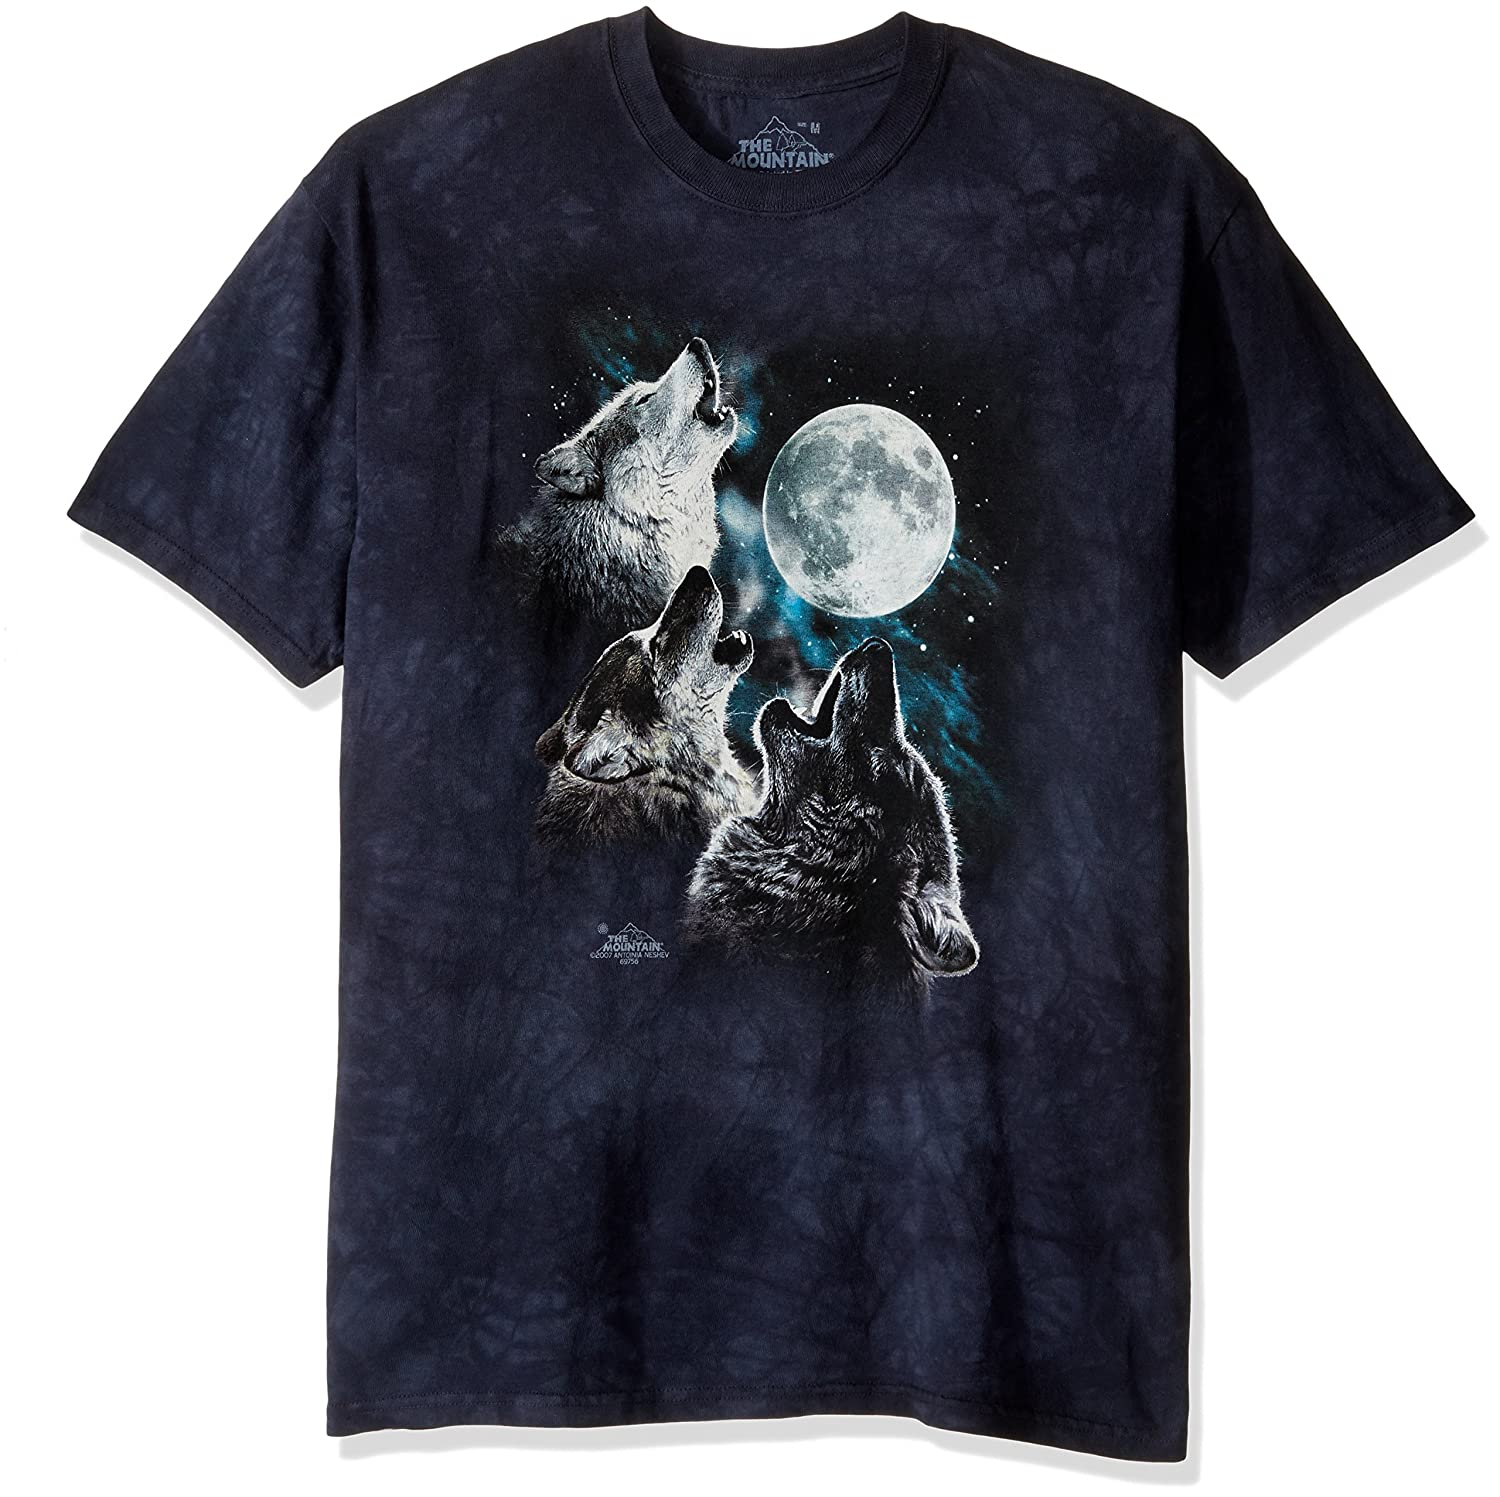 Amazon.com: The Mountain Three Wolf Moon Short Sleeve Tee: Clothing